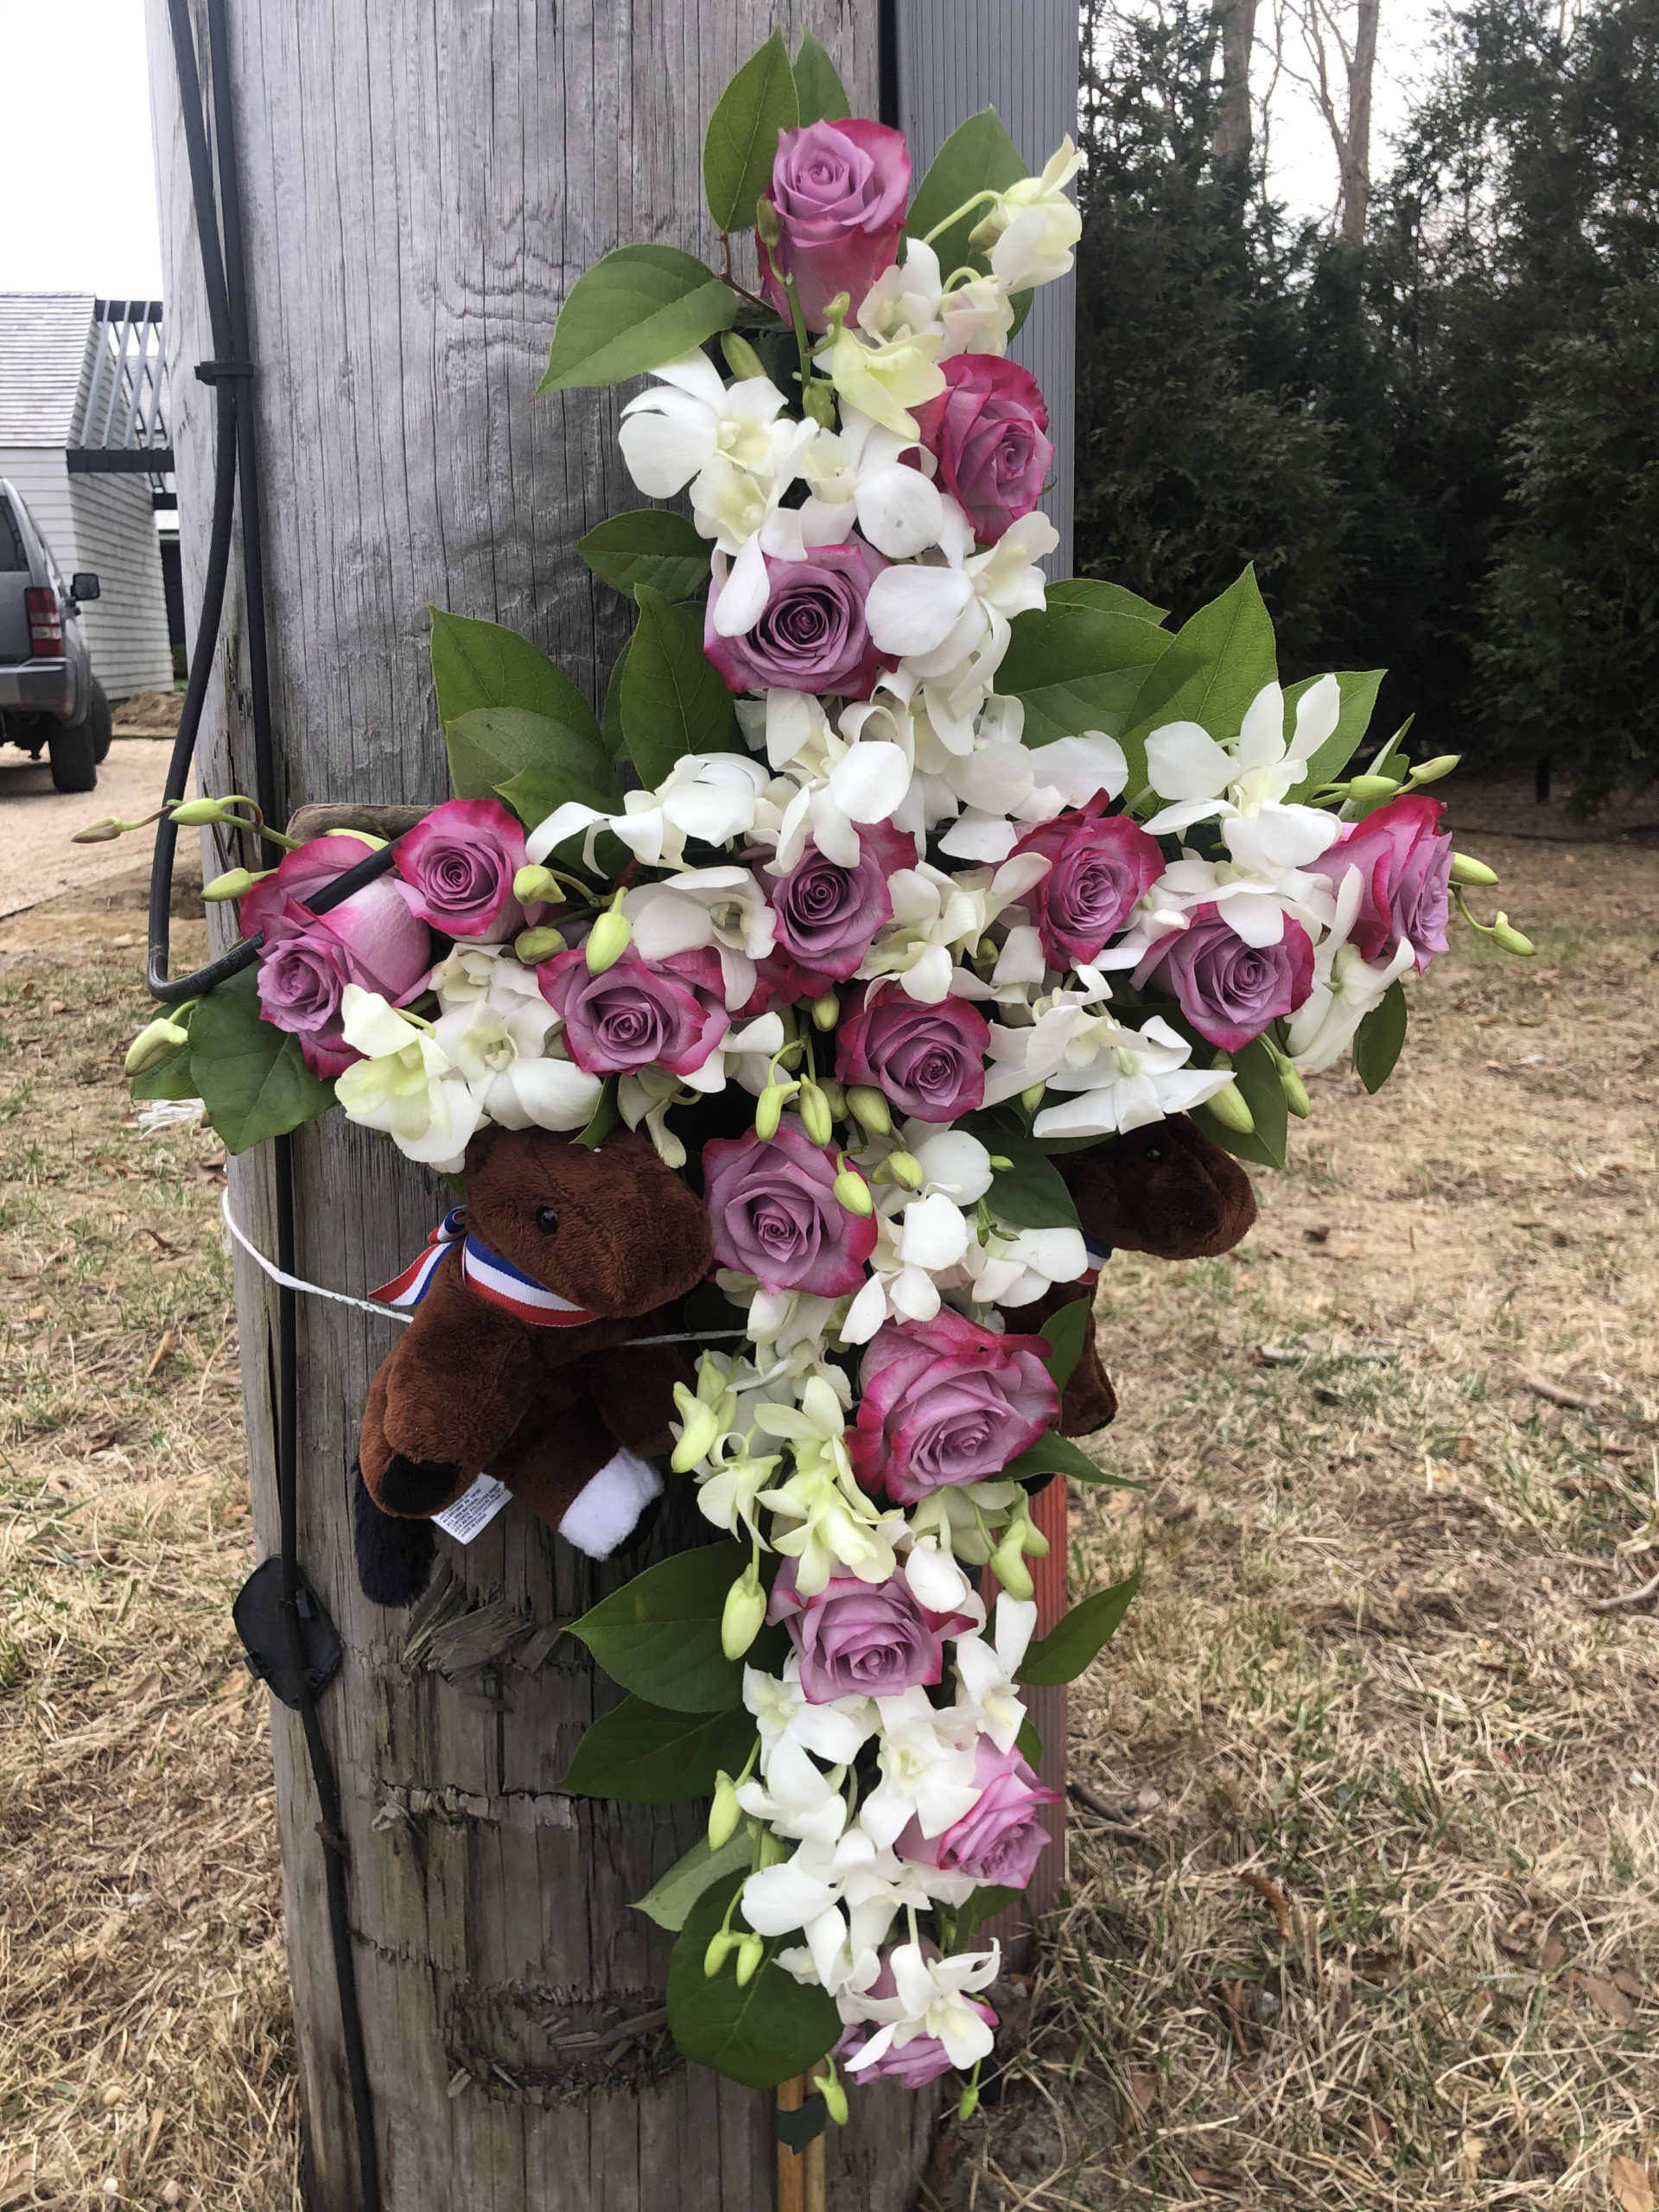 A memorial for hit and run victim Yuris Murillo Cruz has been erected near the area of the accident.    MICHAEL WRIGHT